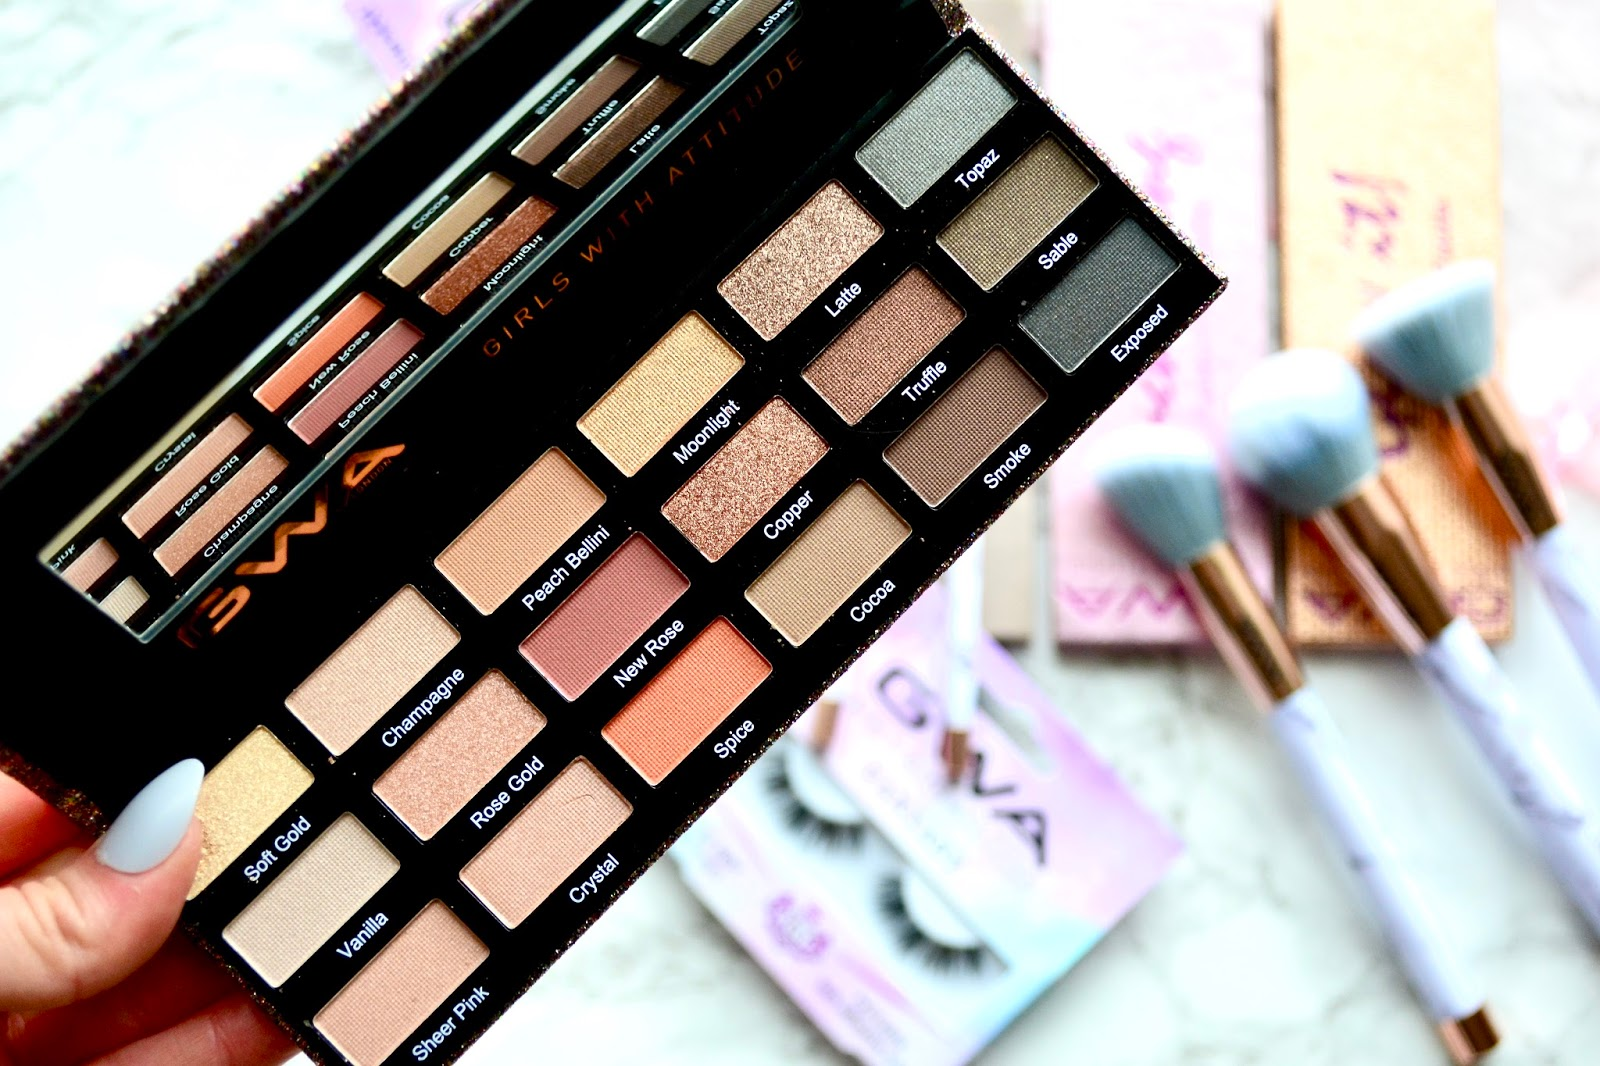 Girls With Attitude 'The Ultimate Goddess Palette'